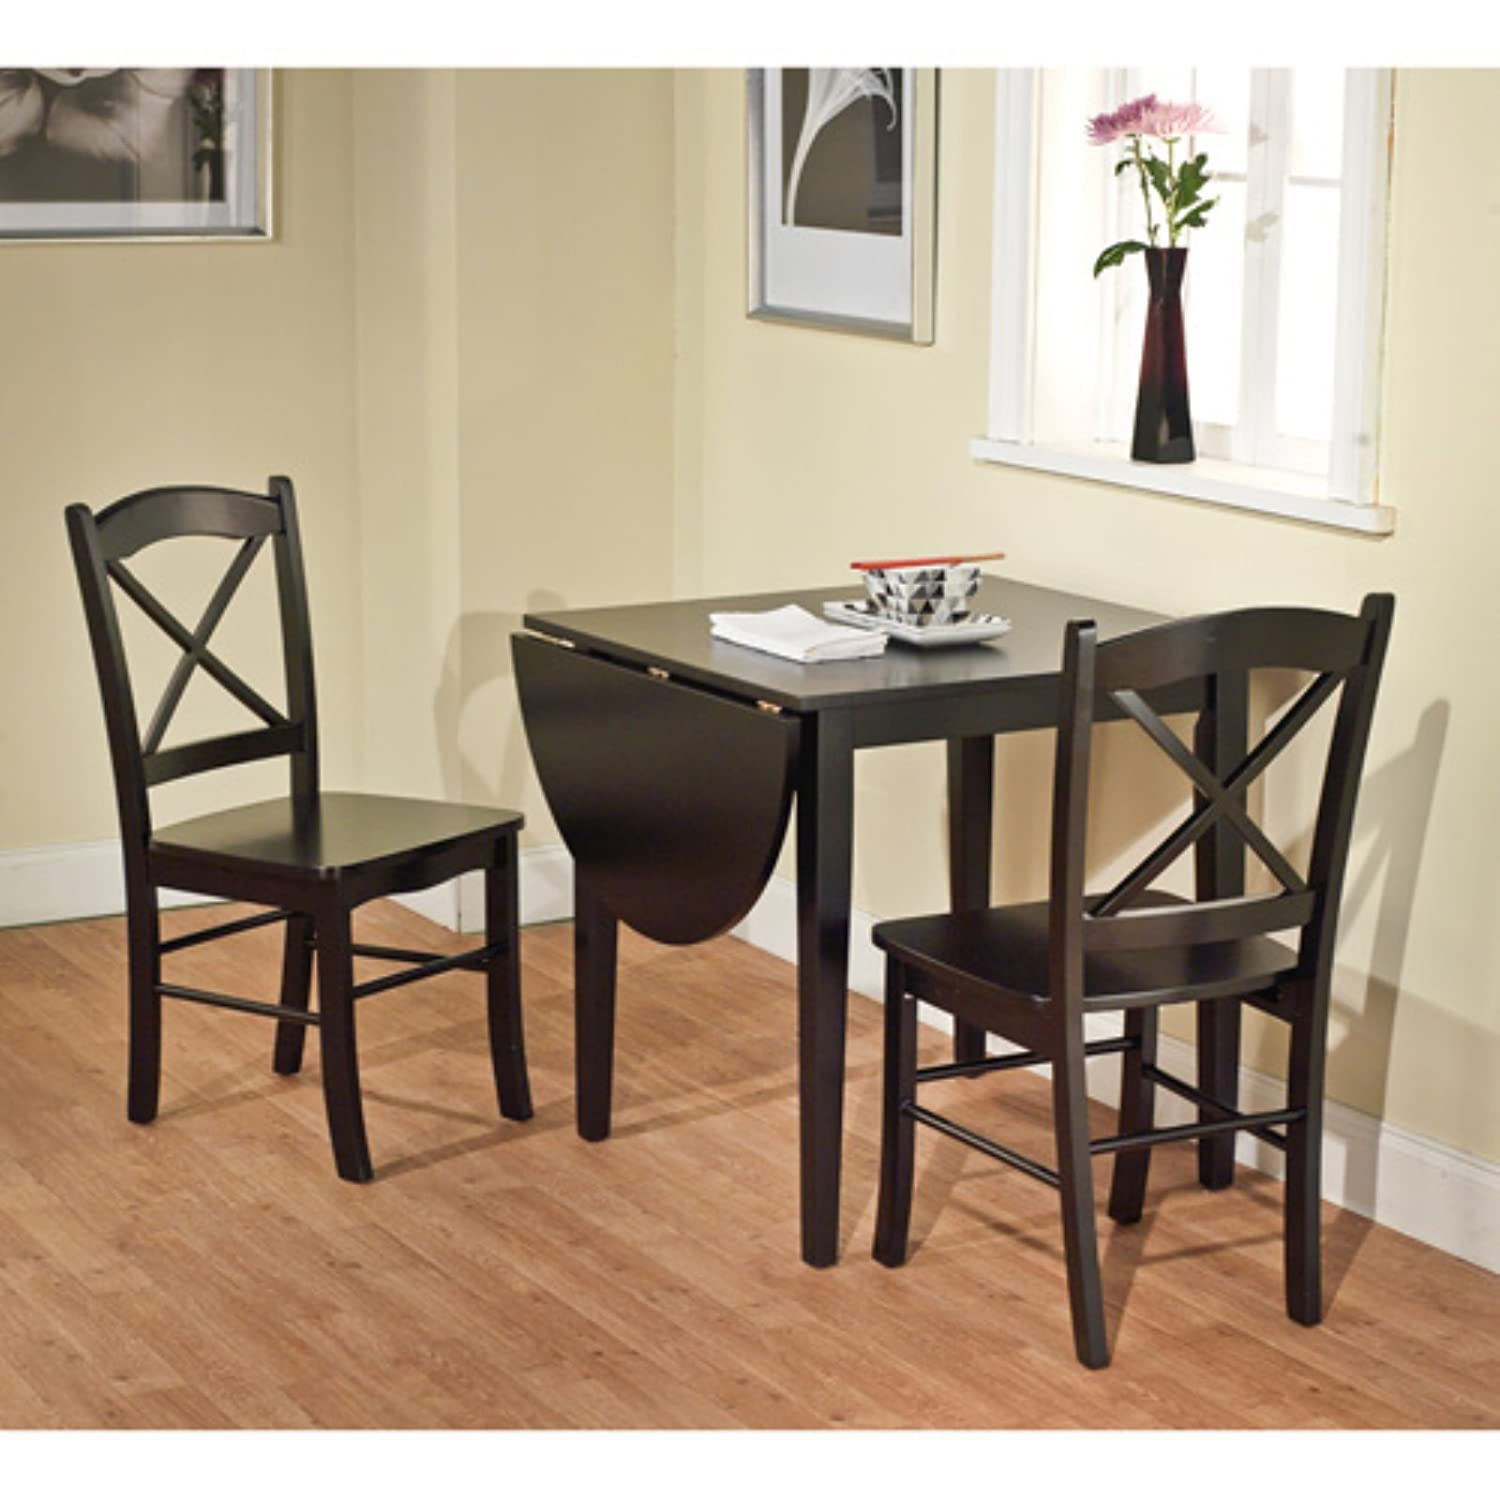 Amazon Tiffany 3 Piece Dining Set Finish Black Table